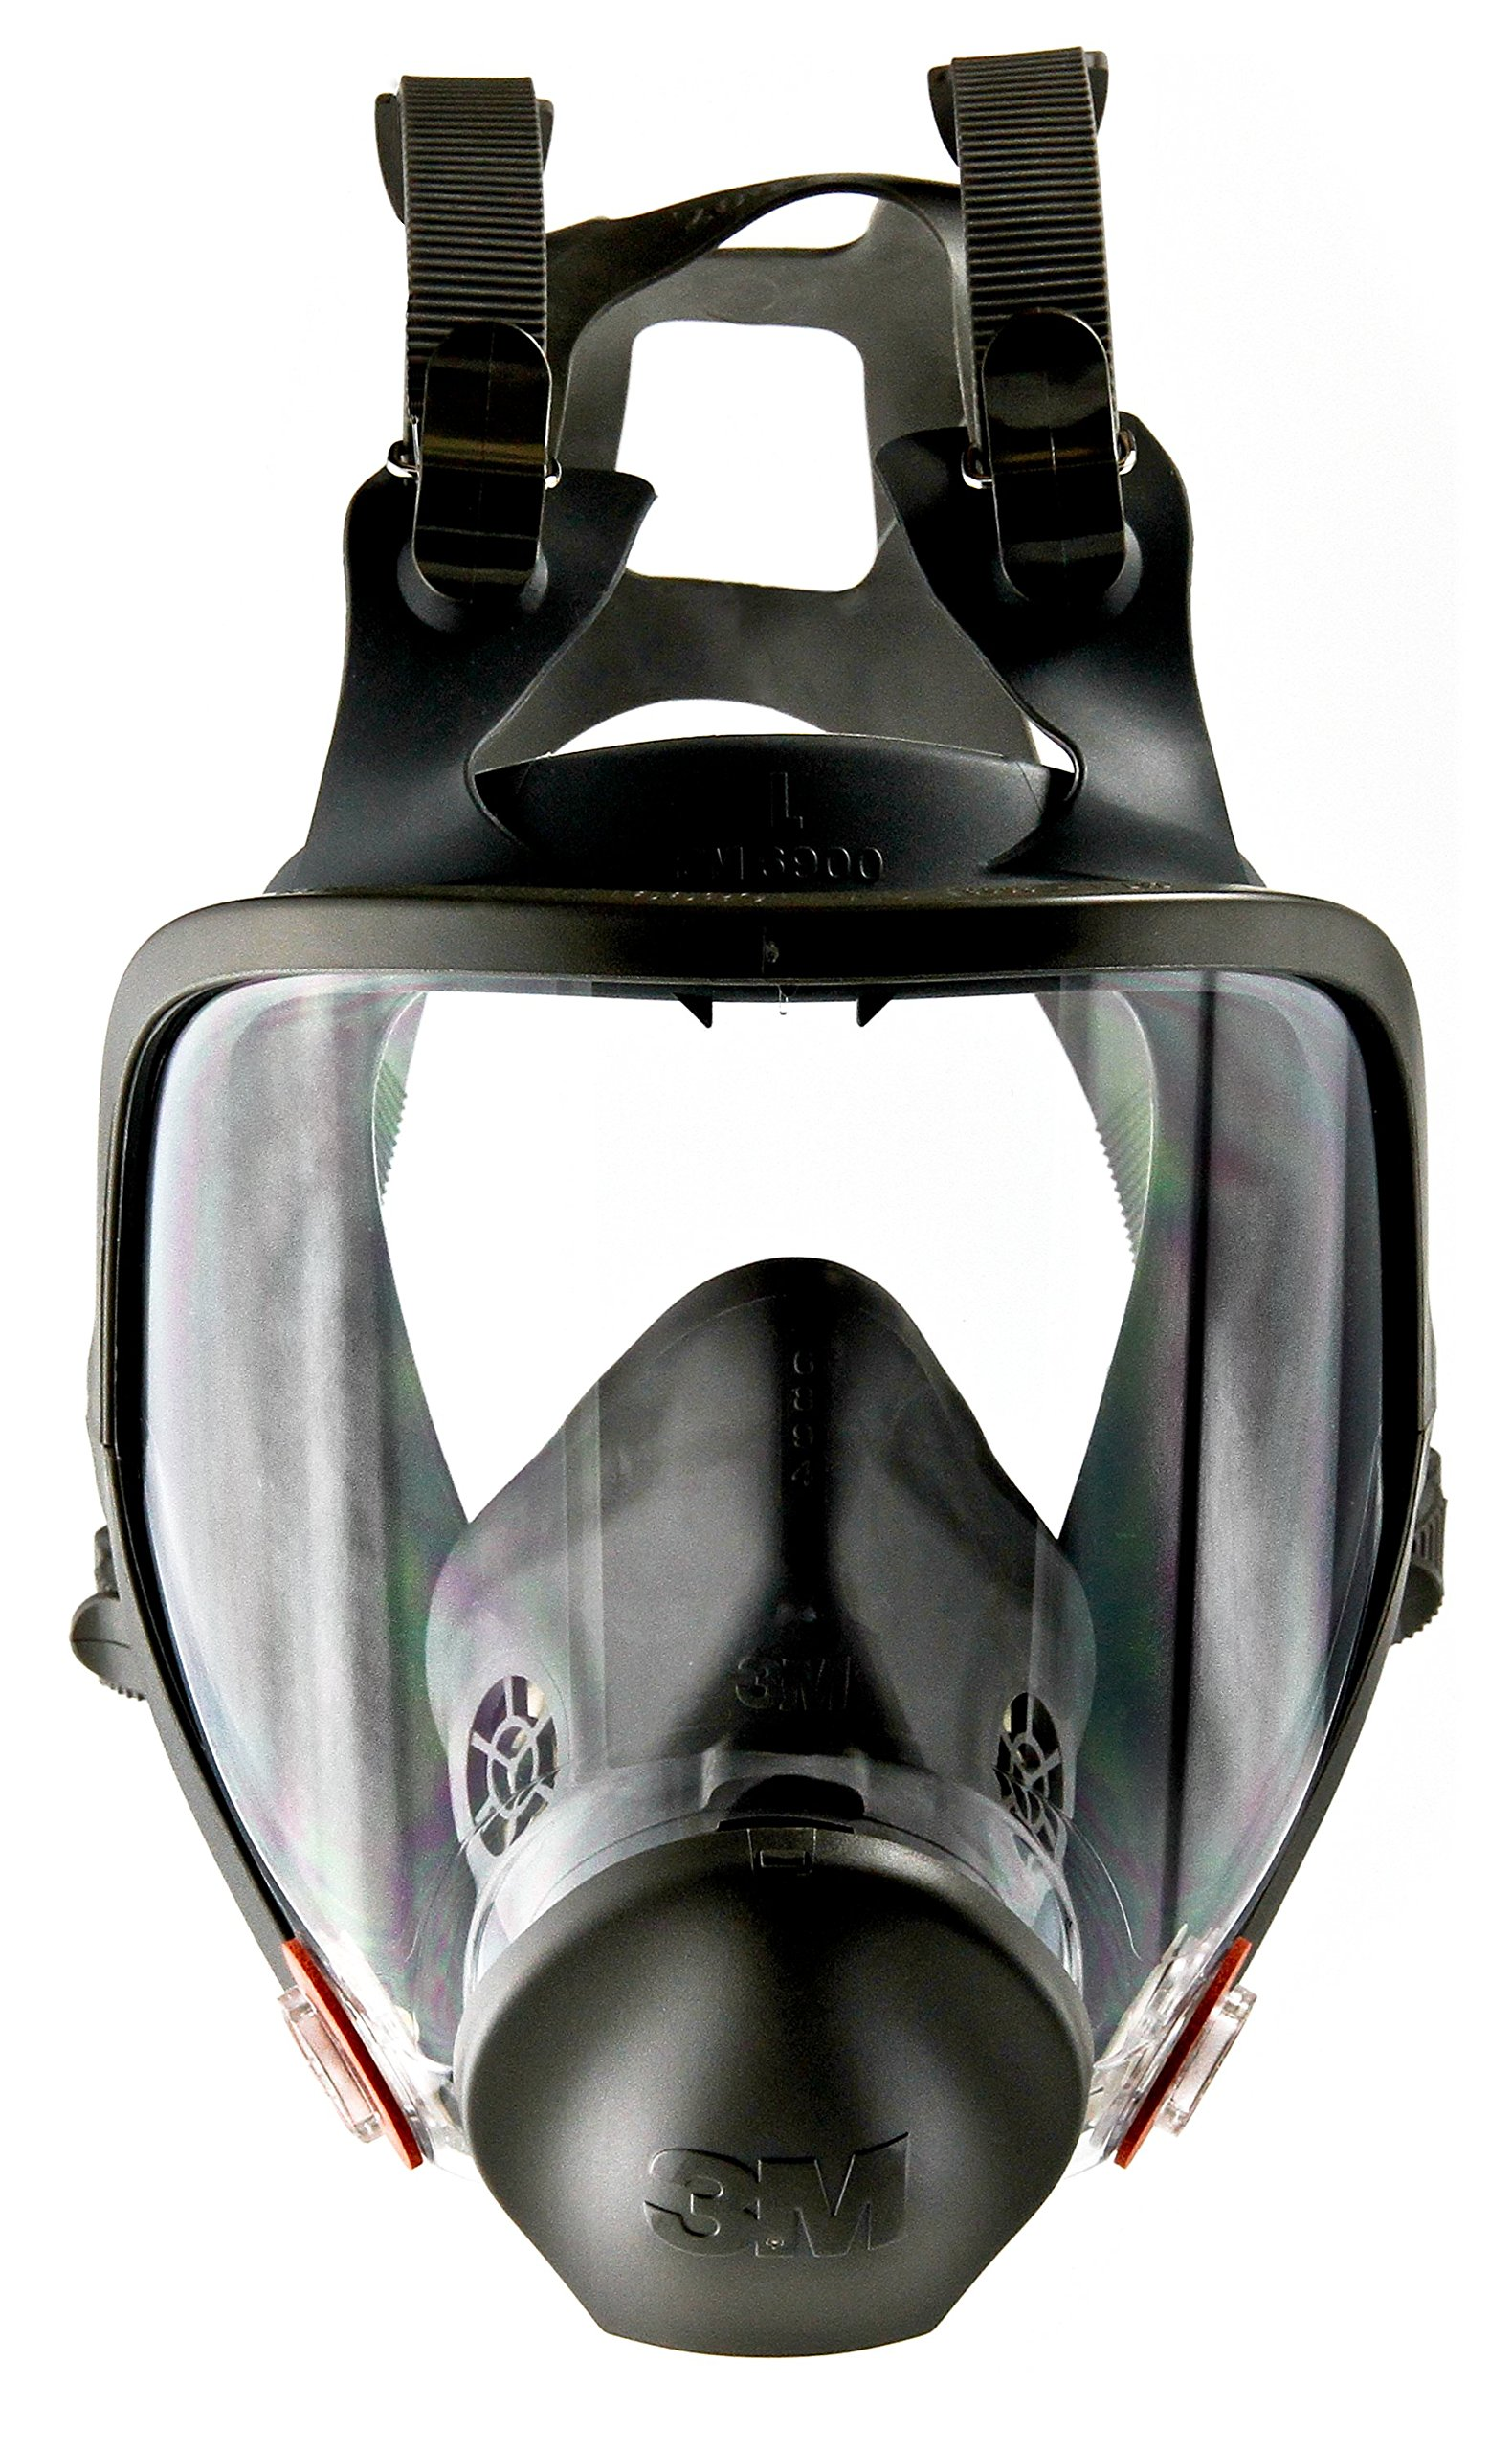 3M Full Facepiece Reusable Respirator 6900, Respiratory Protection, Large (Pack of 1)